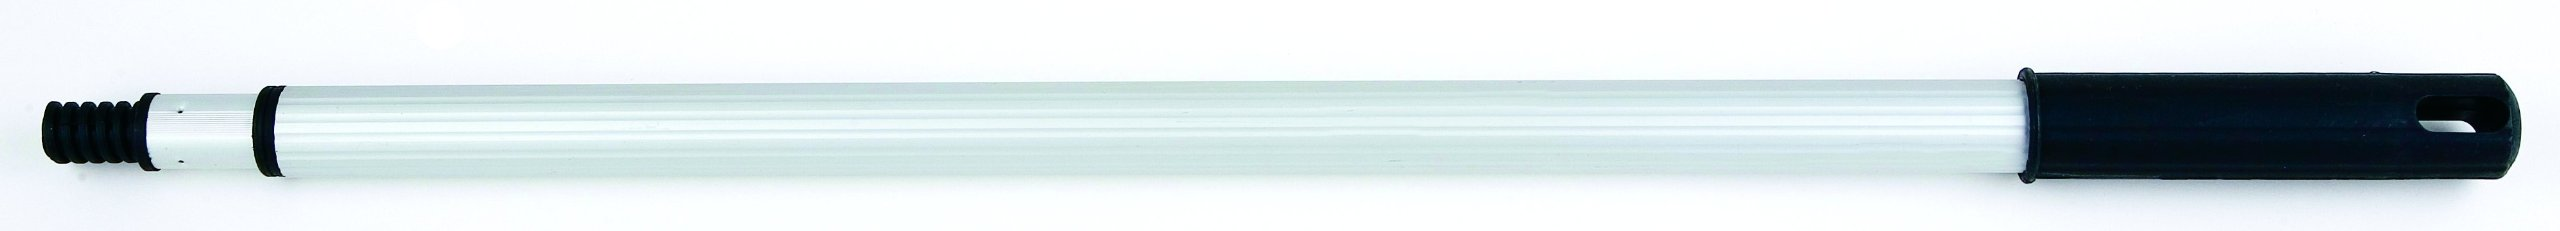 Magnolia Brush Twist-Loc 612 Aluminum Extension Twist Loc Handle, 6' - 12' Length (Case of 6)